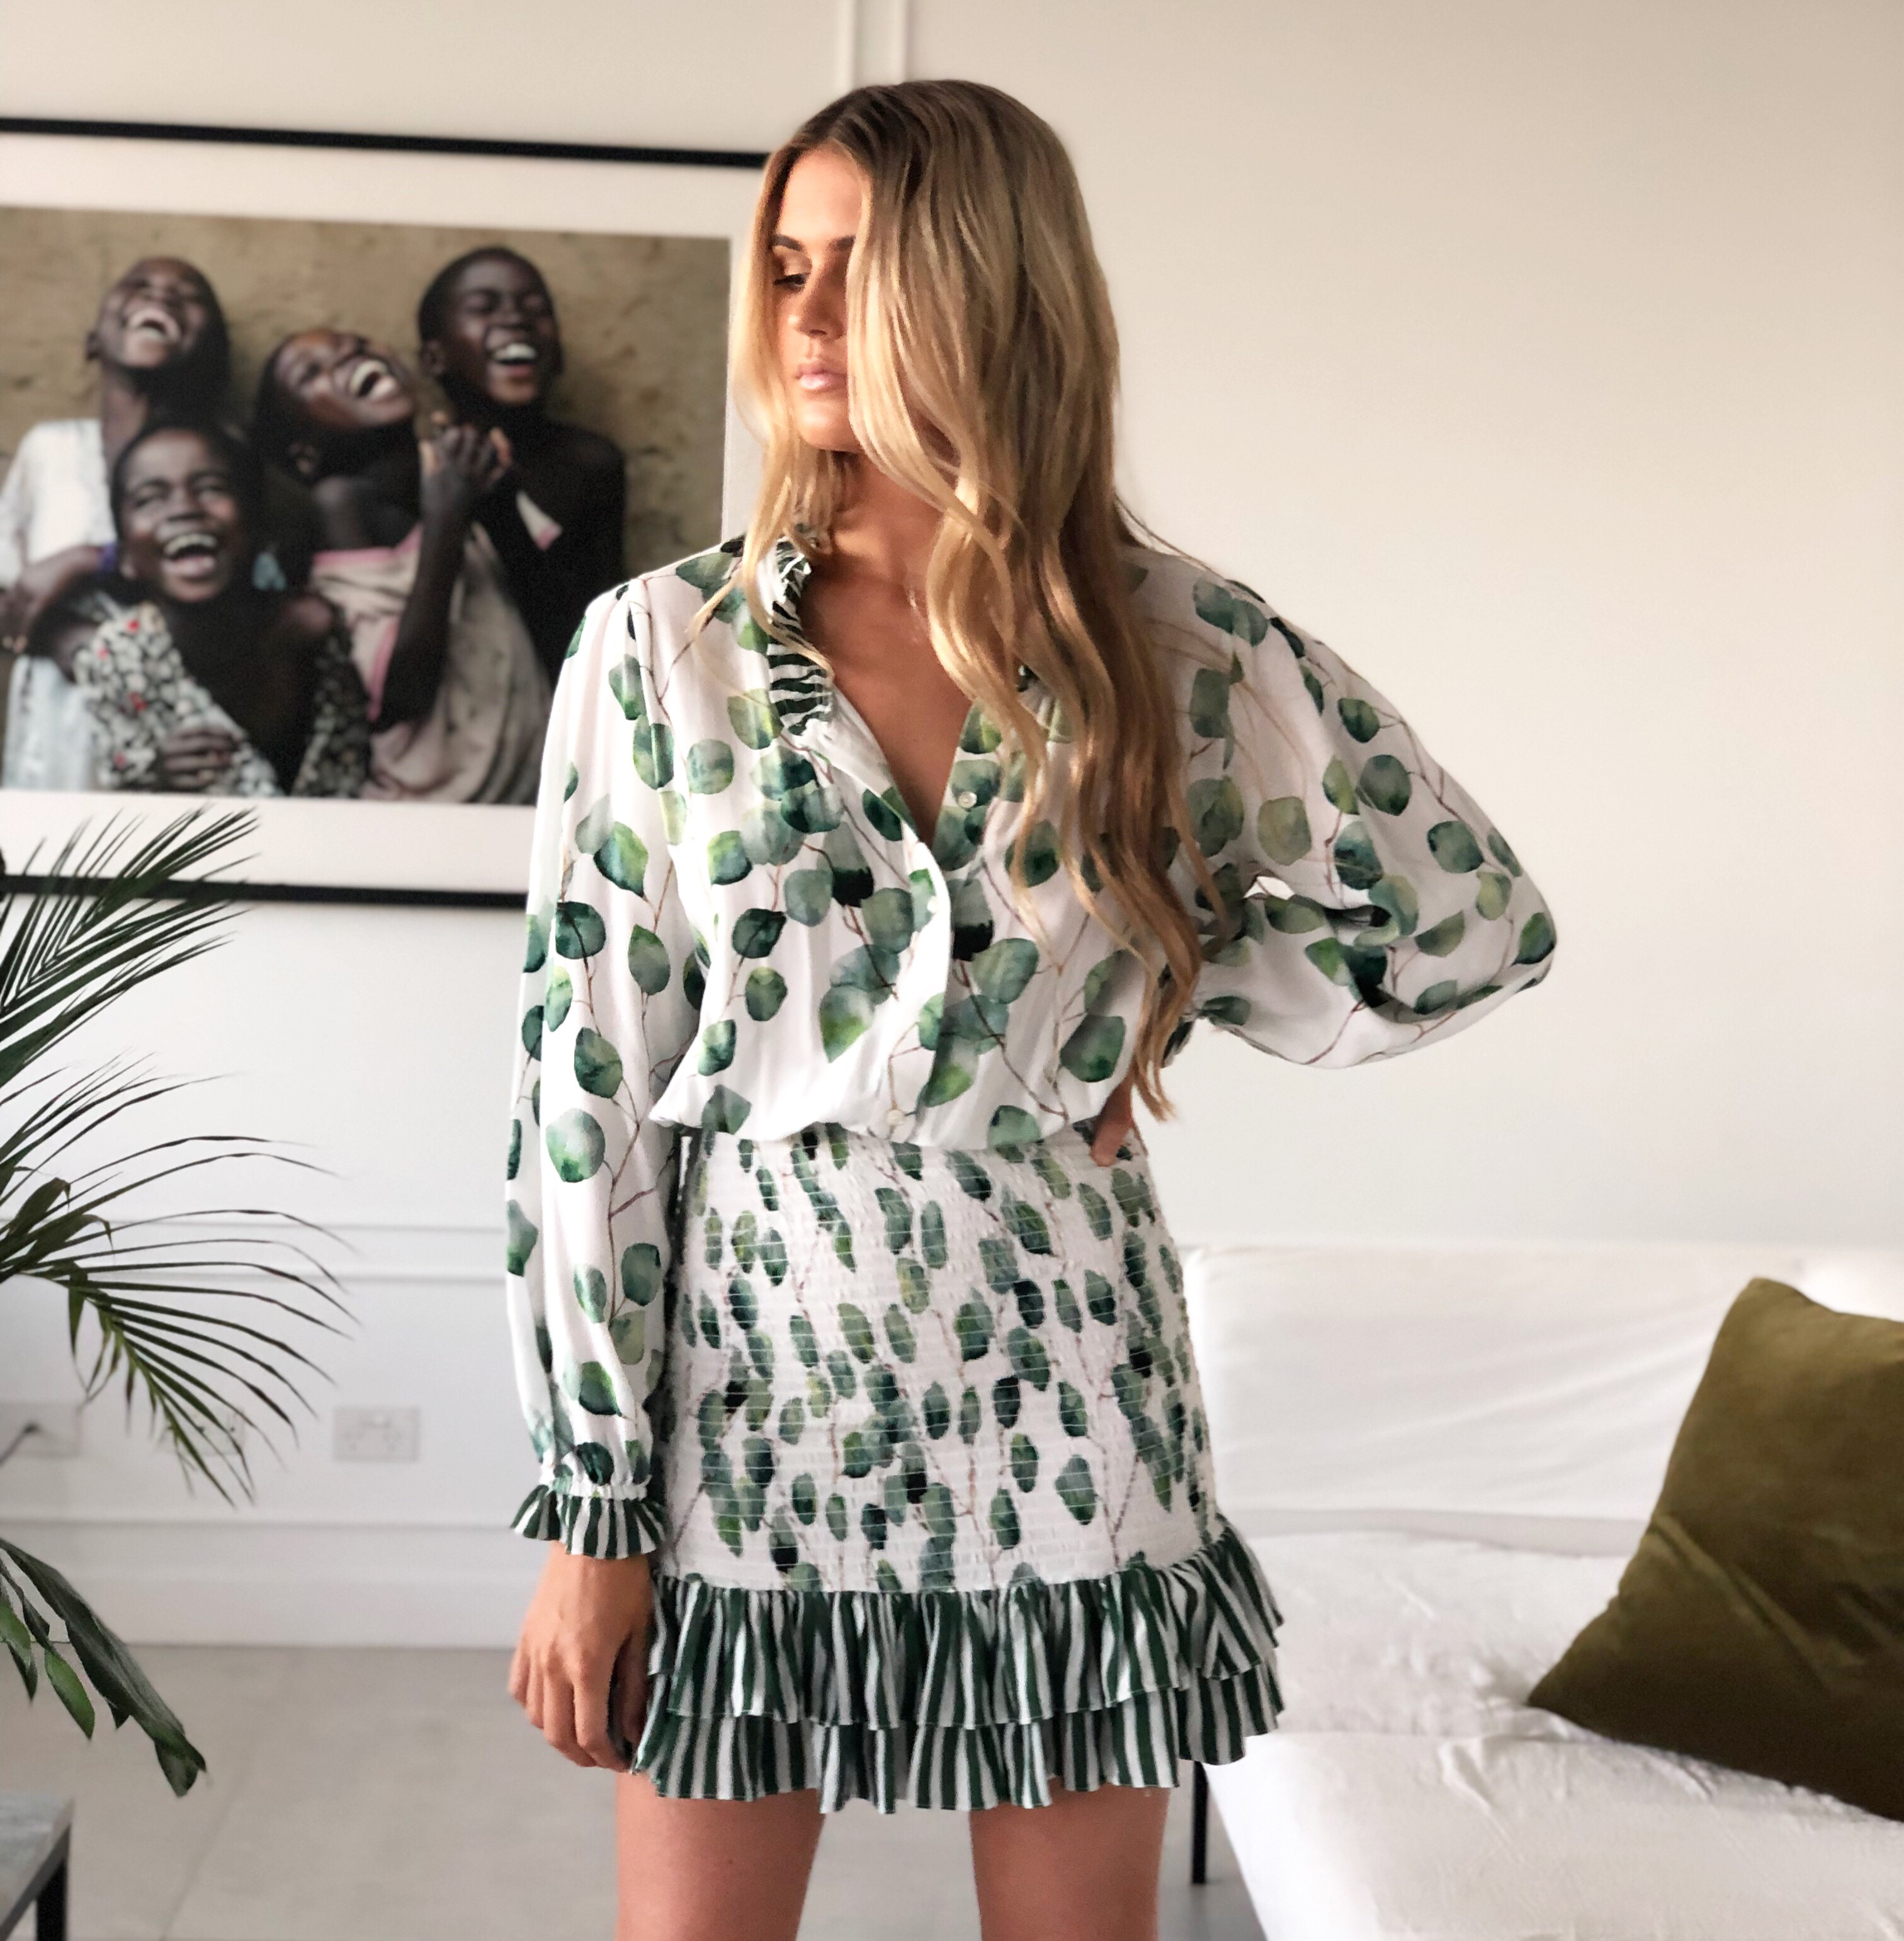 THE LEAFY LINES MINI DRESS